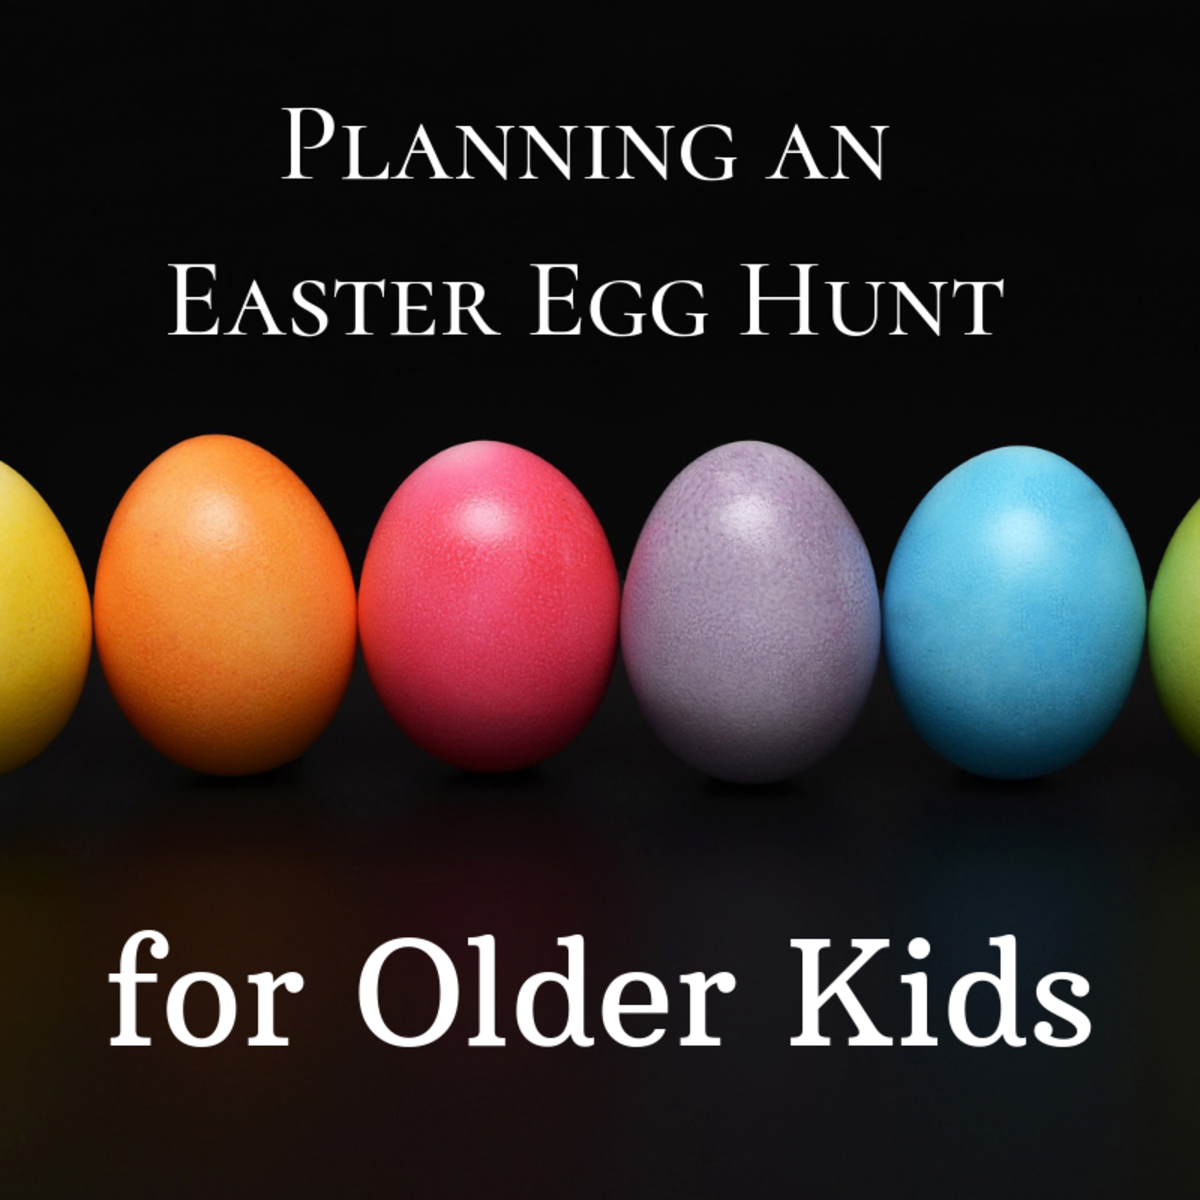 Even if you have children that are a little older, you can still have a fun Easter egg hunt—and this guide will show you how.